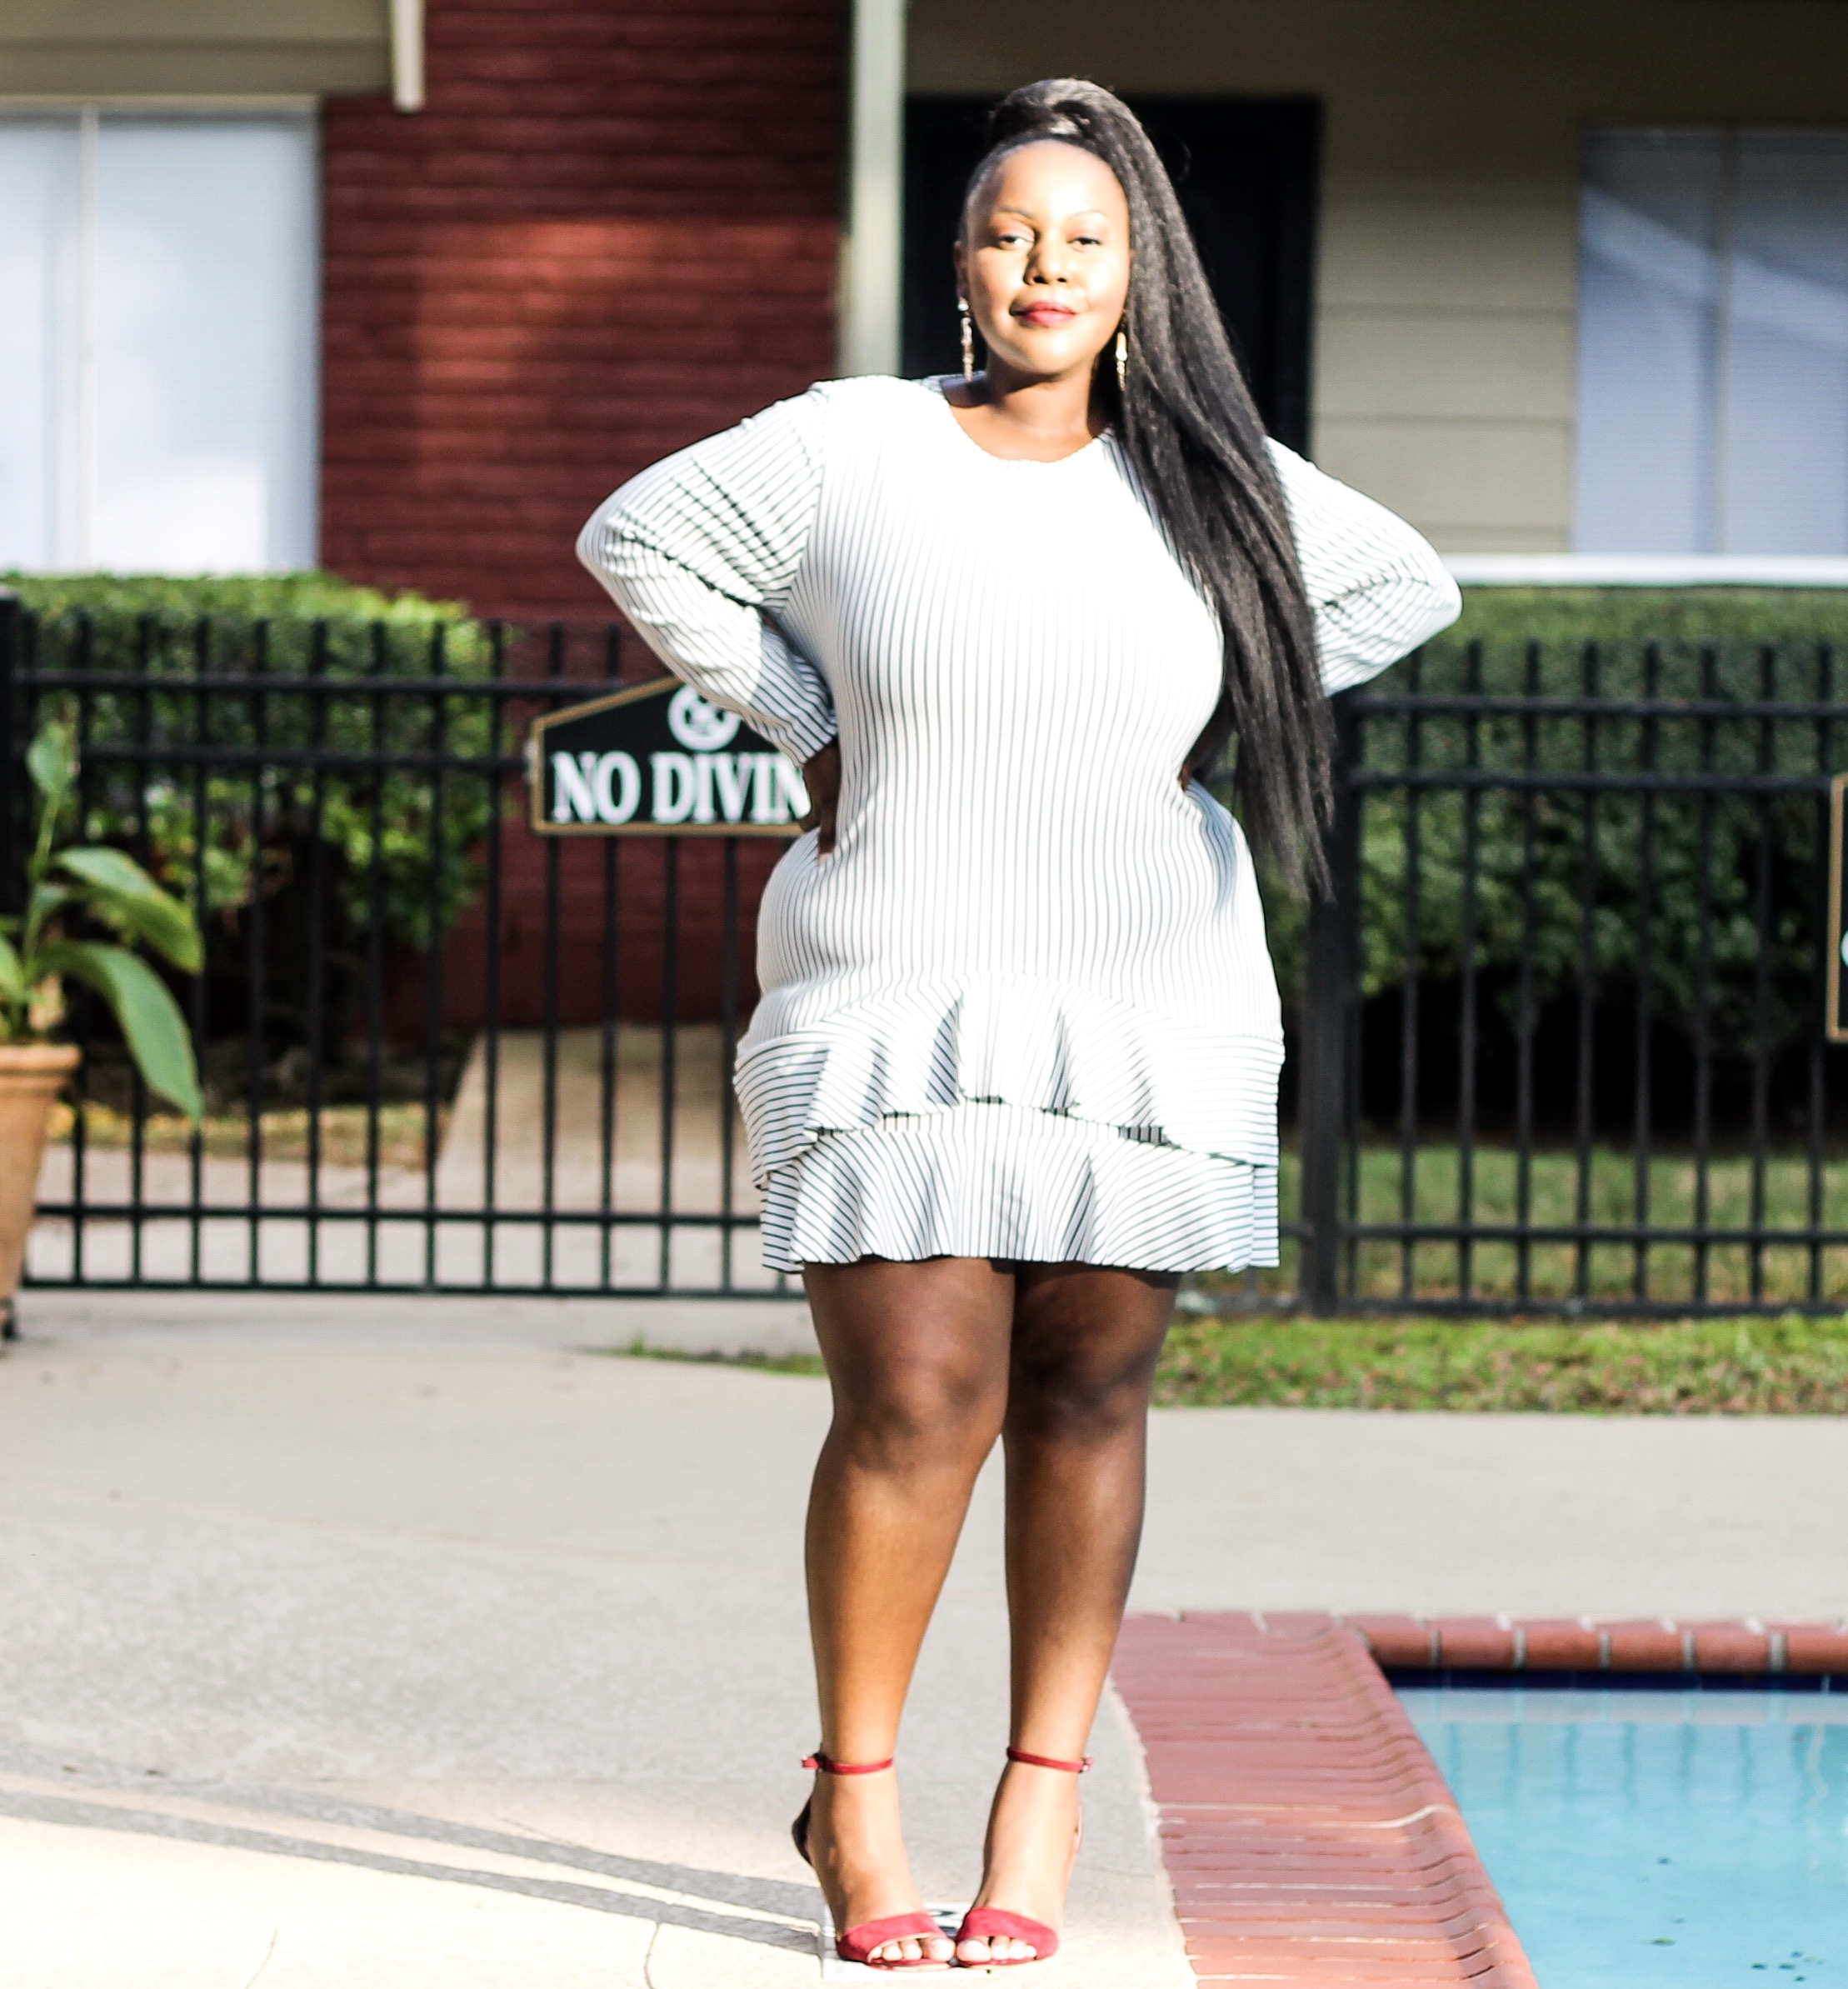 preppy plus size fashion blogs 2017, beautiful curvy girls, how to fill the eye brow of a dark skin, beautiful plus size dark skin girls, plus size black bloggers, clothes for curvy girls, curvy girl fashion clothing, plus blog, plus size fashion tips, plus size women blog, curvy women fashion, plus blog, curvy girl fashion blog, style plus curves, plus size fashion instagram, curvy girl blog, bbw blog, plus size street fashion, plus size beauty blog, plus size fashion ideas, curvy girl summer outfits, plus size fashion magazine, plus fashion bloggers, zara, Rosie the riveter shirt; Emilia embroidered beaded clutch; Vince Camuto heels; Lula shell drop earrings; Aldo Galigossi sunnies, GABRIELLE UNION COLLECTION - STRIPED KIMONO DRESS, new york & company,